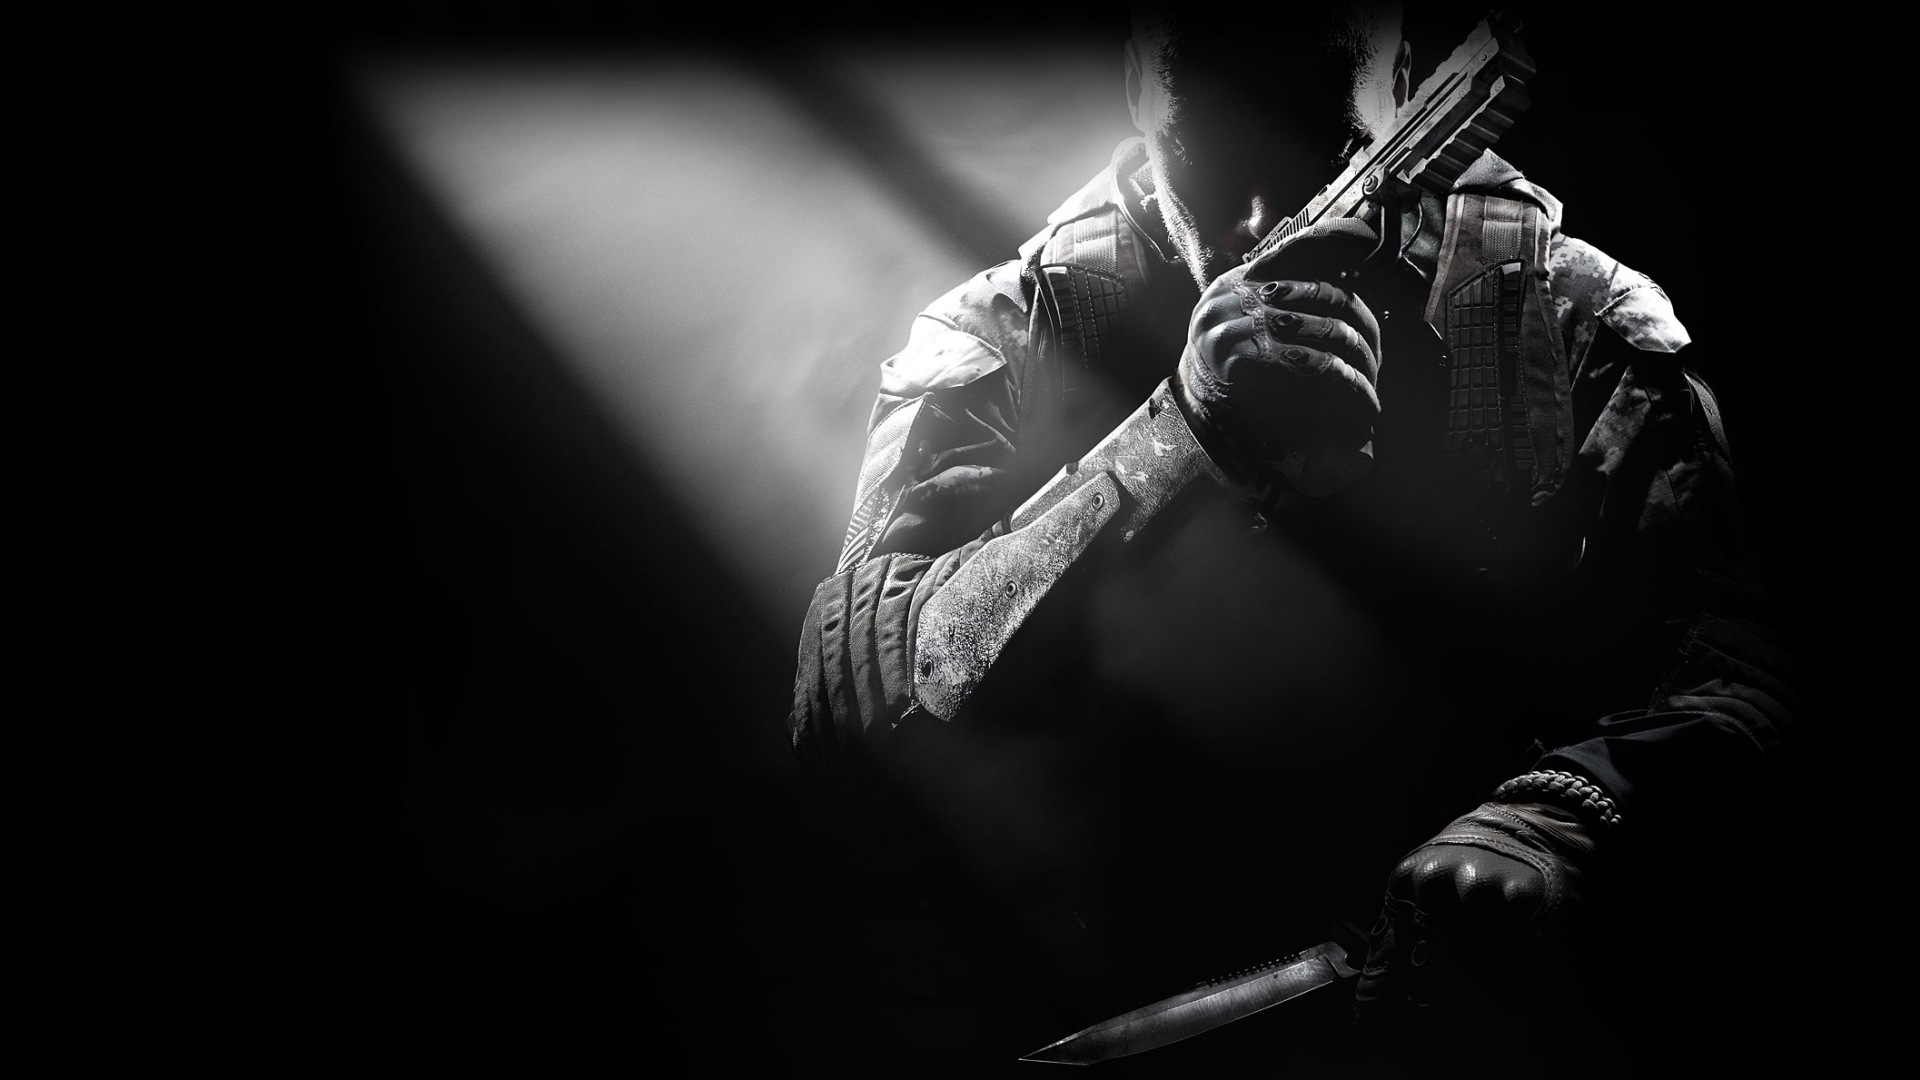 Call of Duty Black Ops 2 wallpaper 2